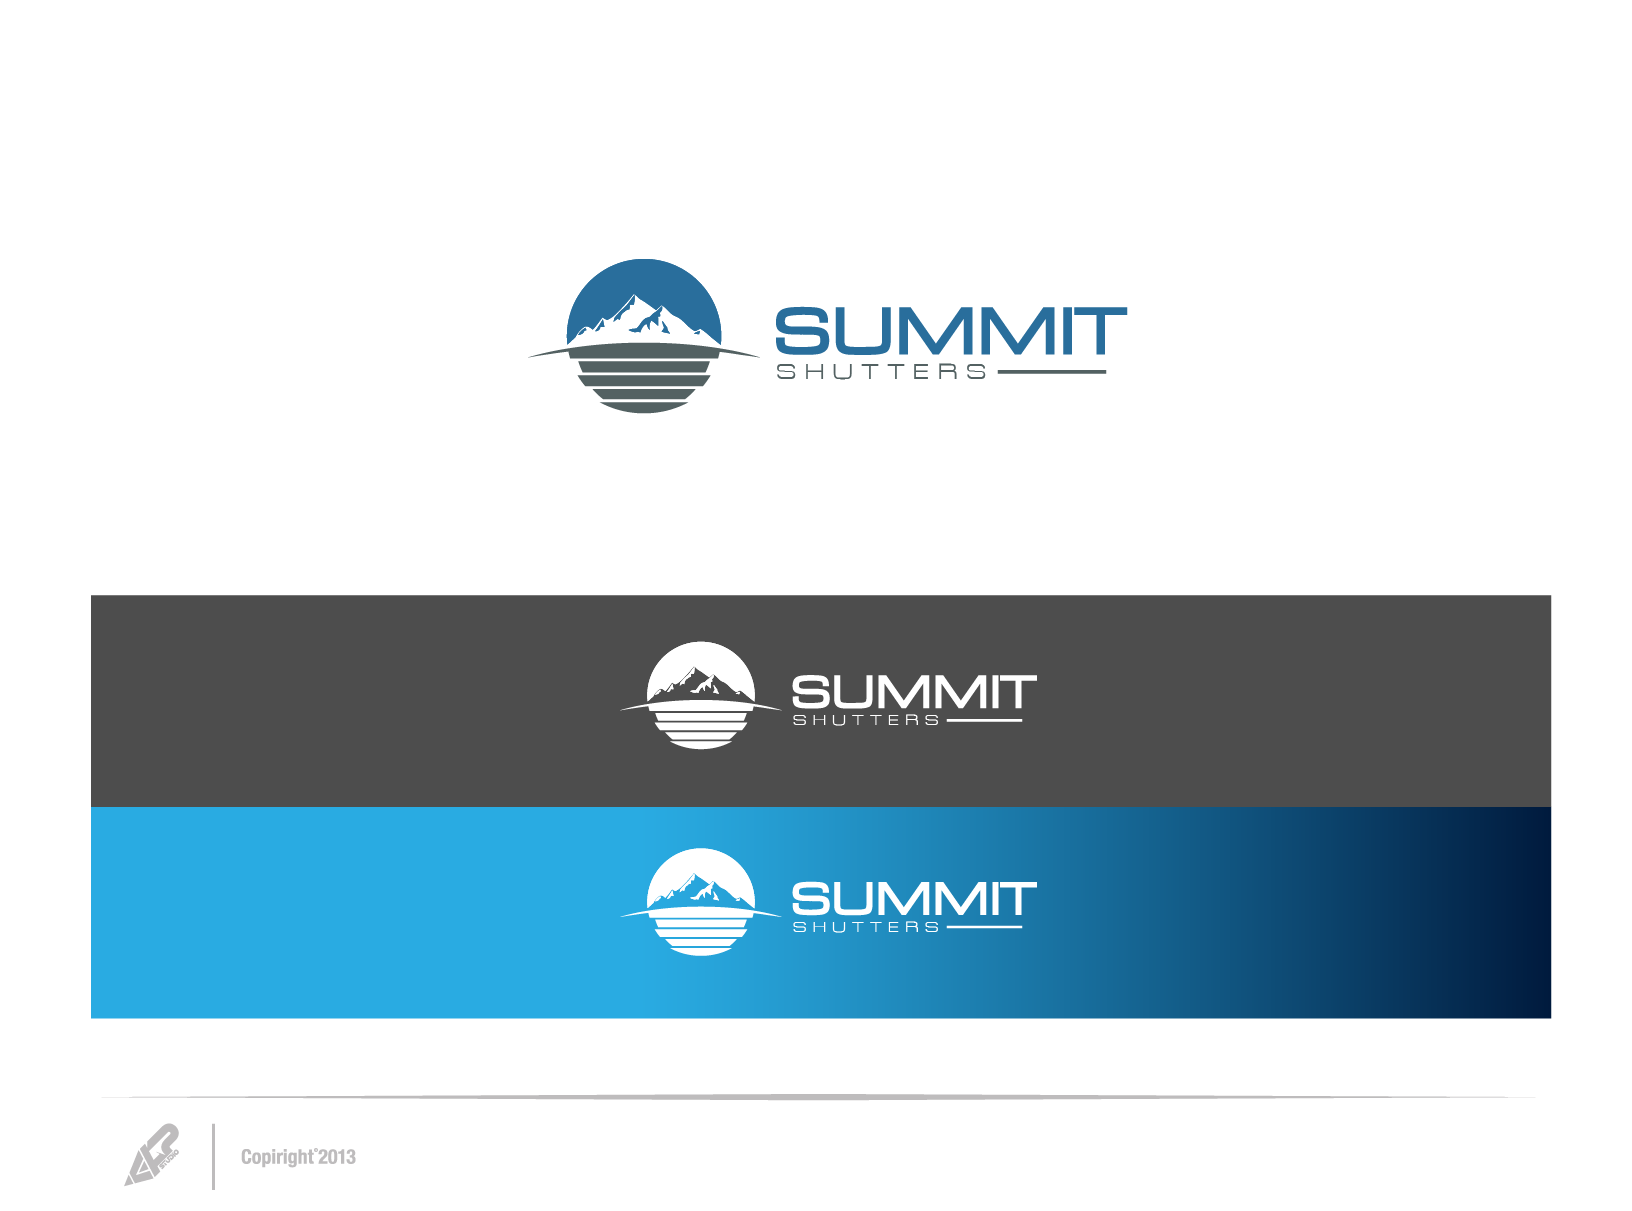 Help Summit Shutters with a new logo